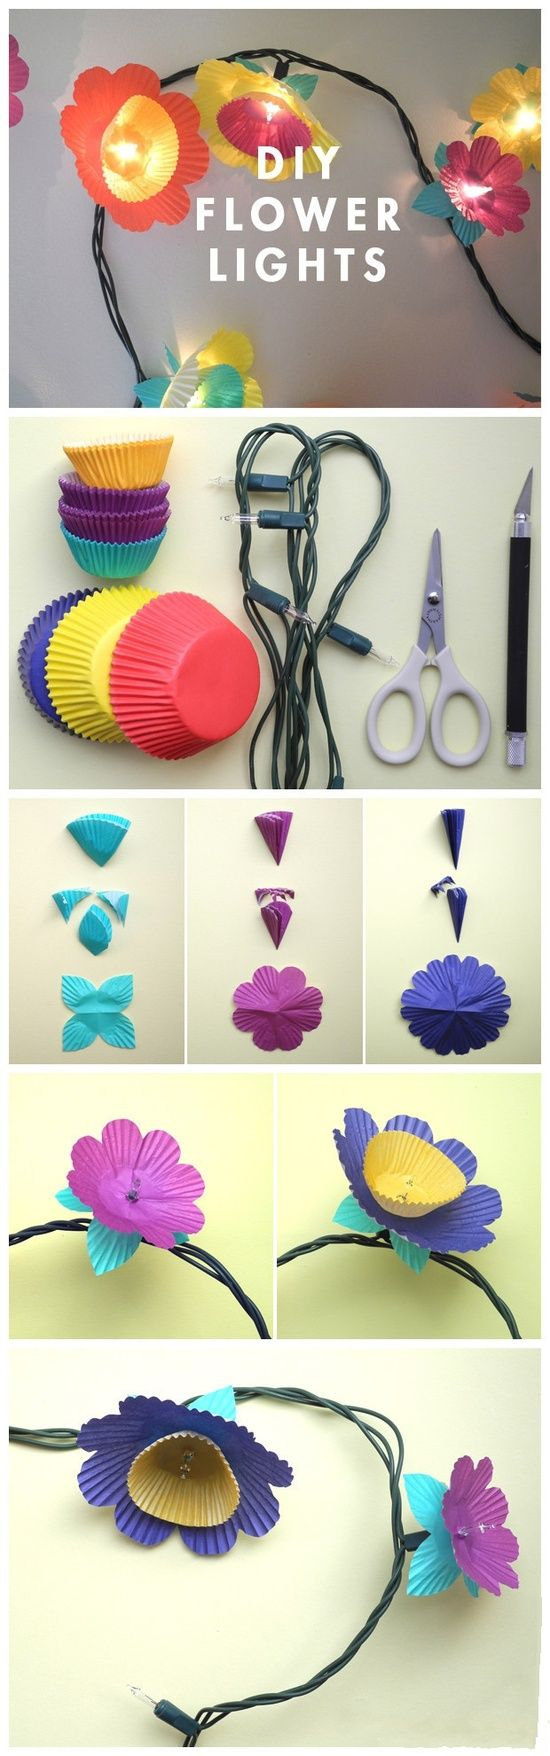 DIY flower lights. Would be cute for a little girls room :) I CAN SO SEE YOU DOING THIS